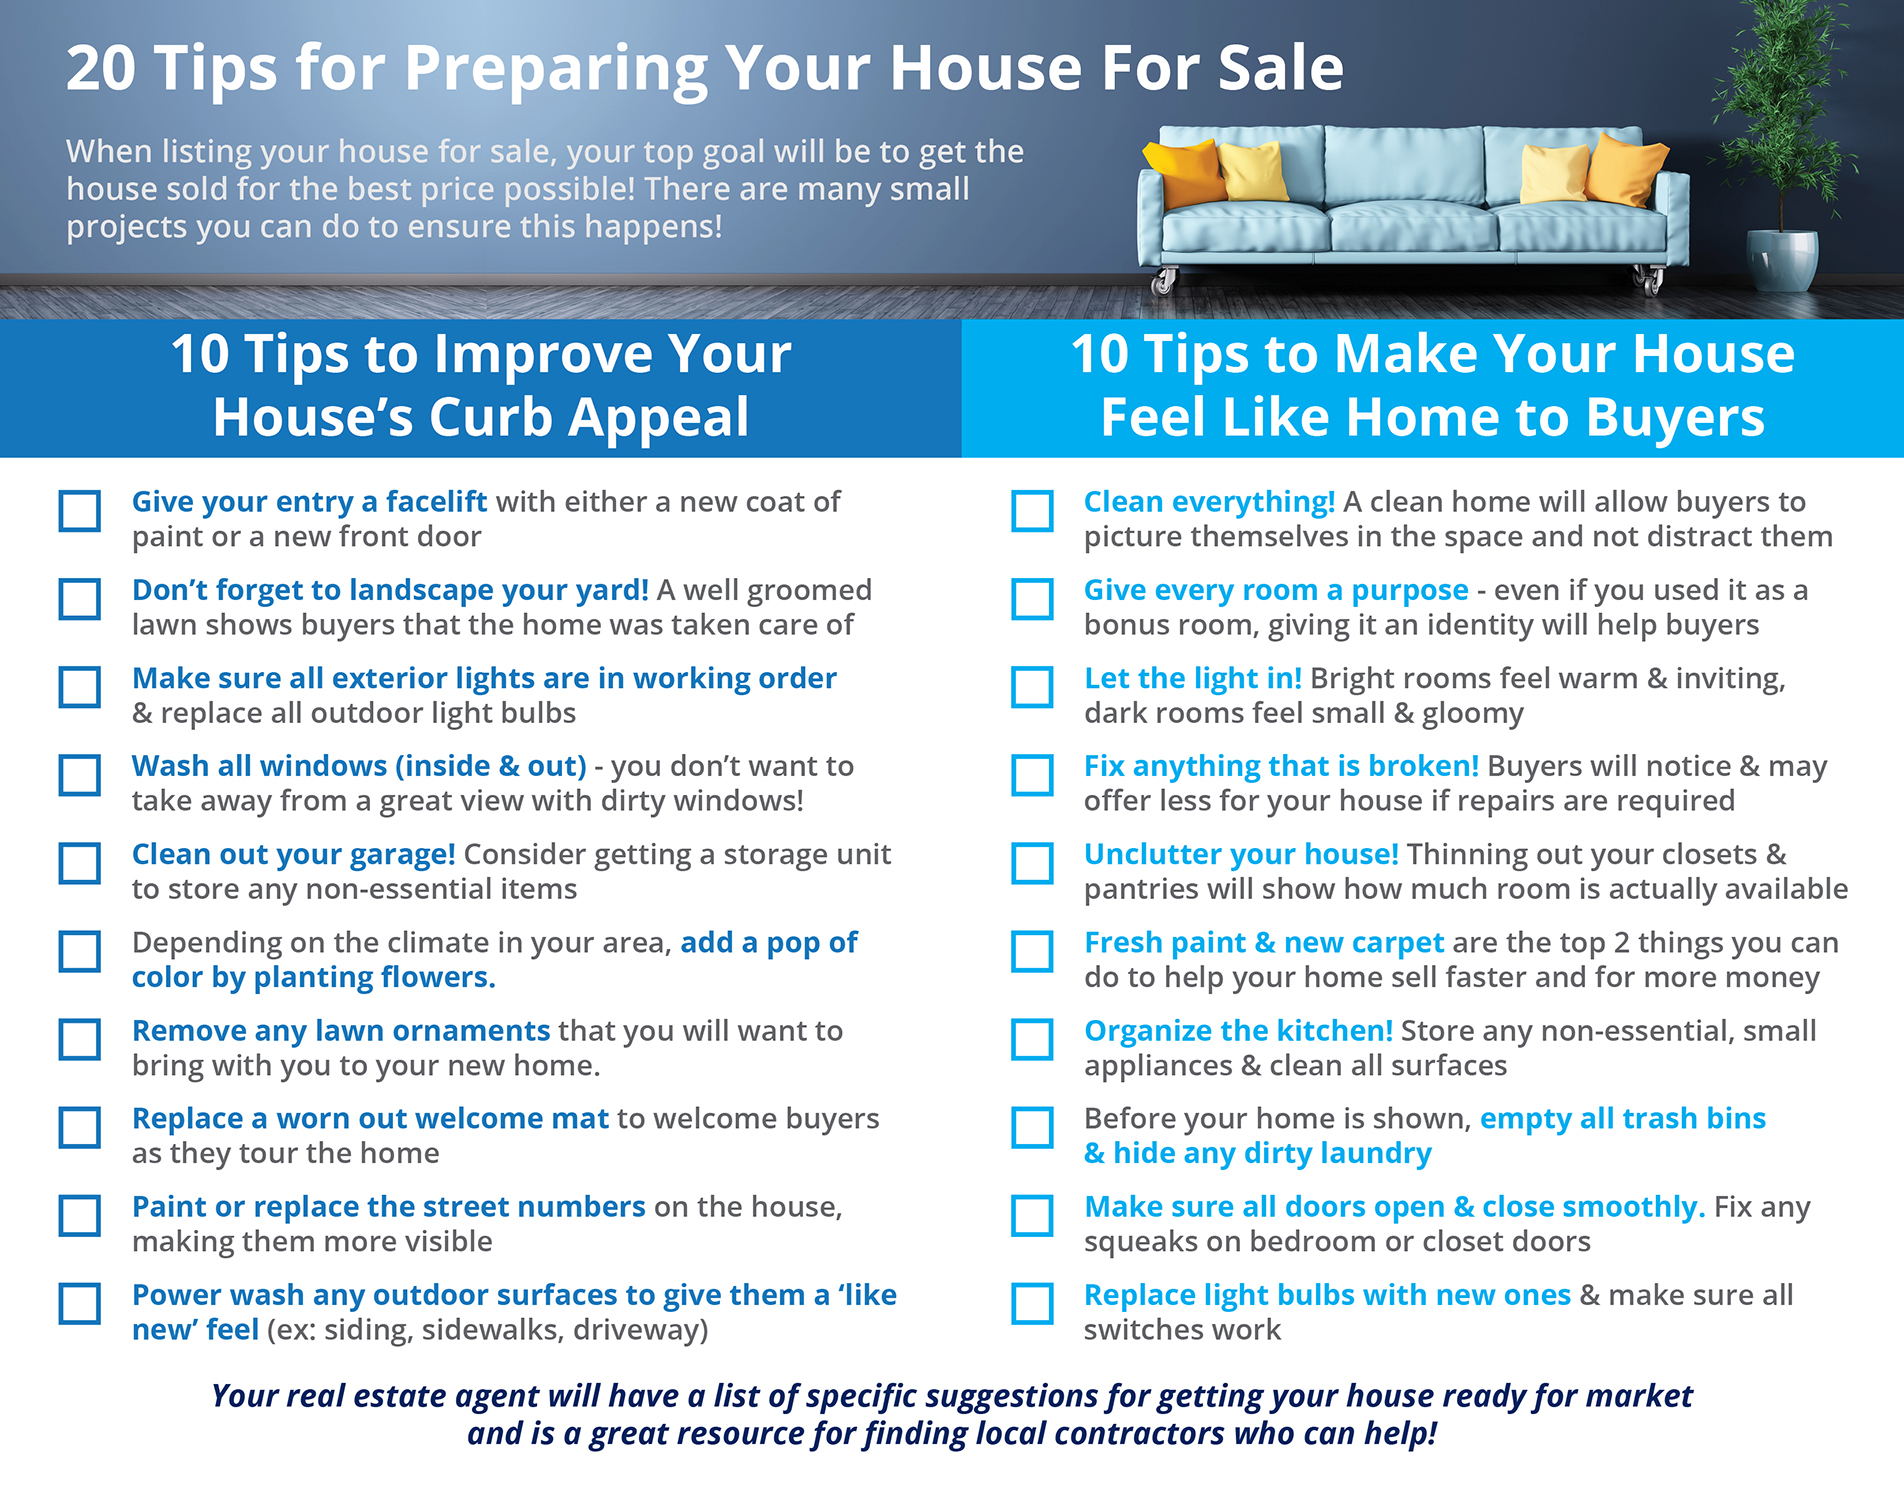 20 Tips for Preparing Your House for Sale This Fall [INFOGRAPHIC] | Simplifying The Market